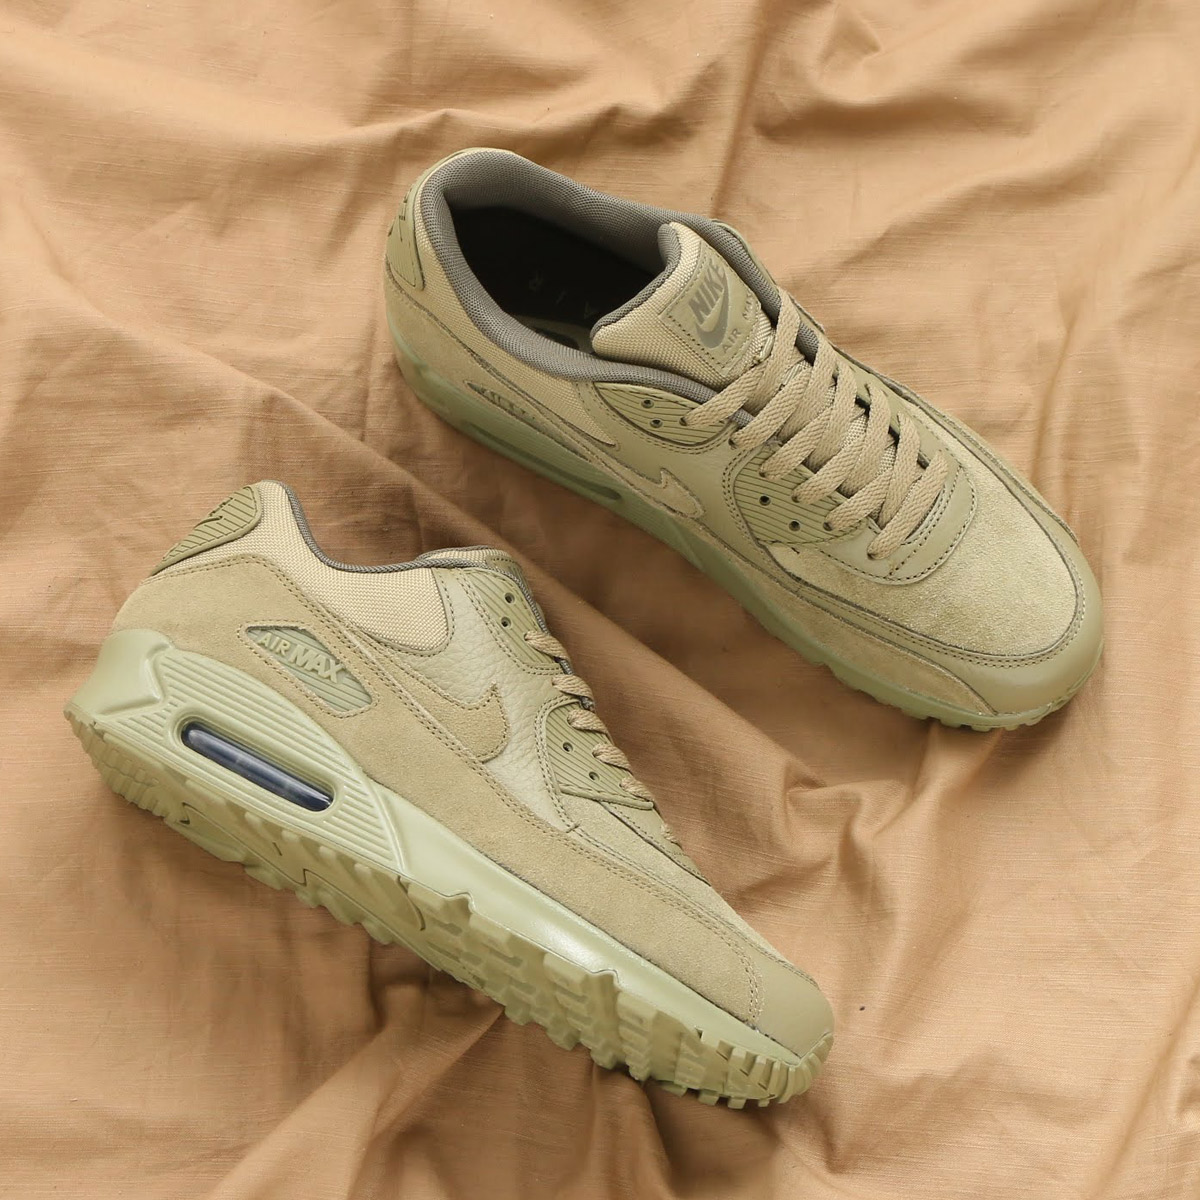 2714b29ae11 maximum point 10 times that is targeted for all articles! NIKE AIR MAX 90  PREMIUM (Kie Ney AMAX 90 premium) (NEUTRAL OLIVE NEUTRAL OLIVE-MEDIUM OLIVE)  18SP- ...